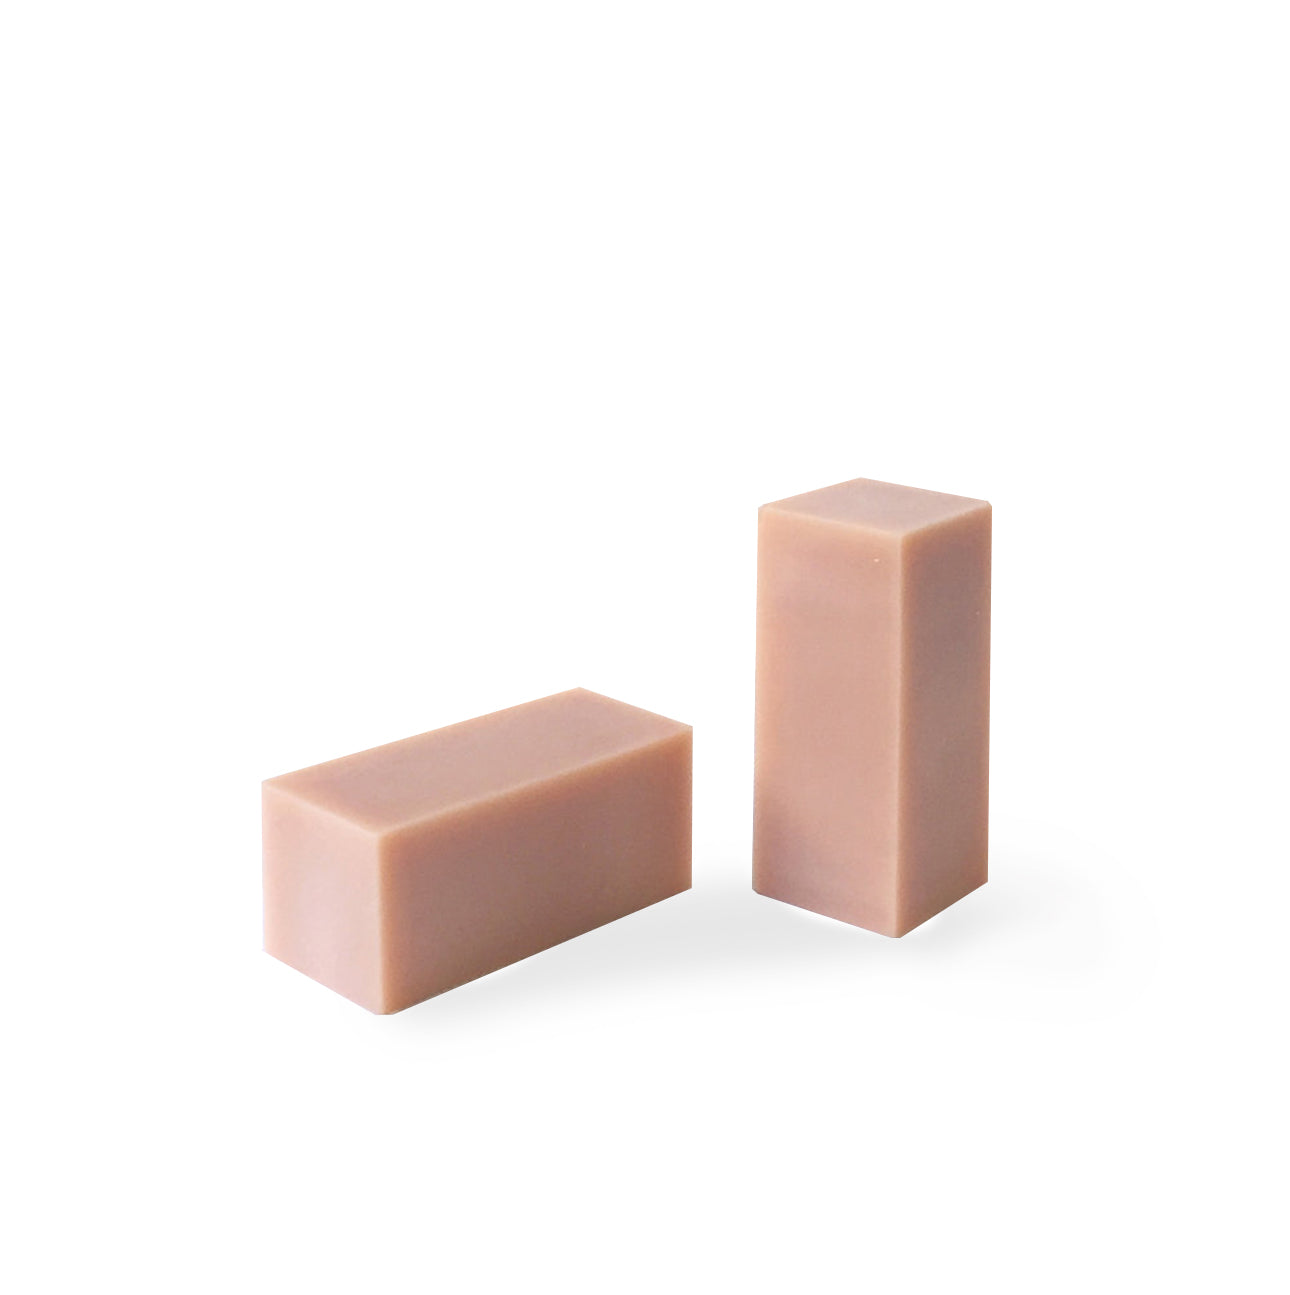 Binu Binu Hibiscus Clay Facial Soap